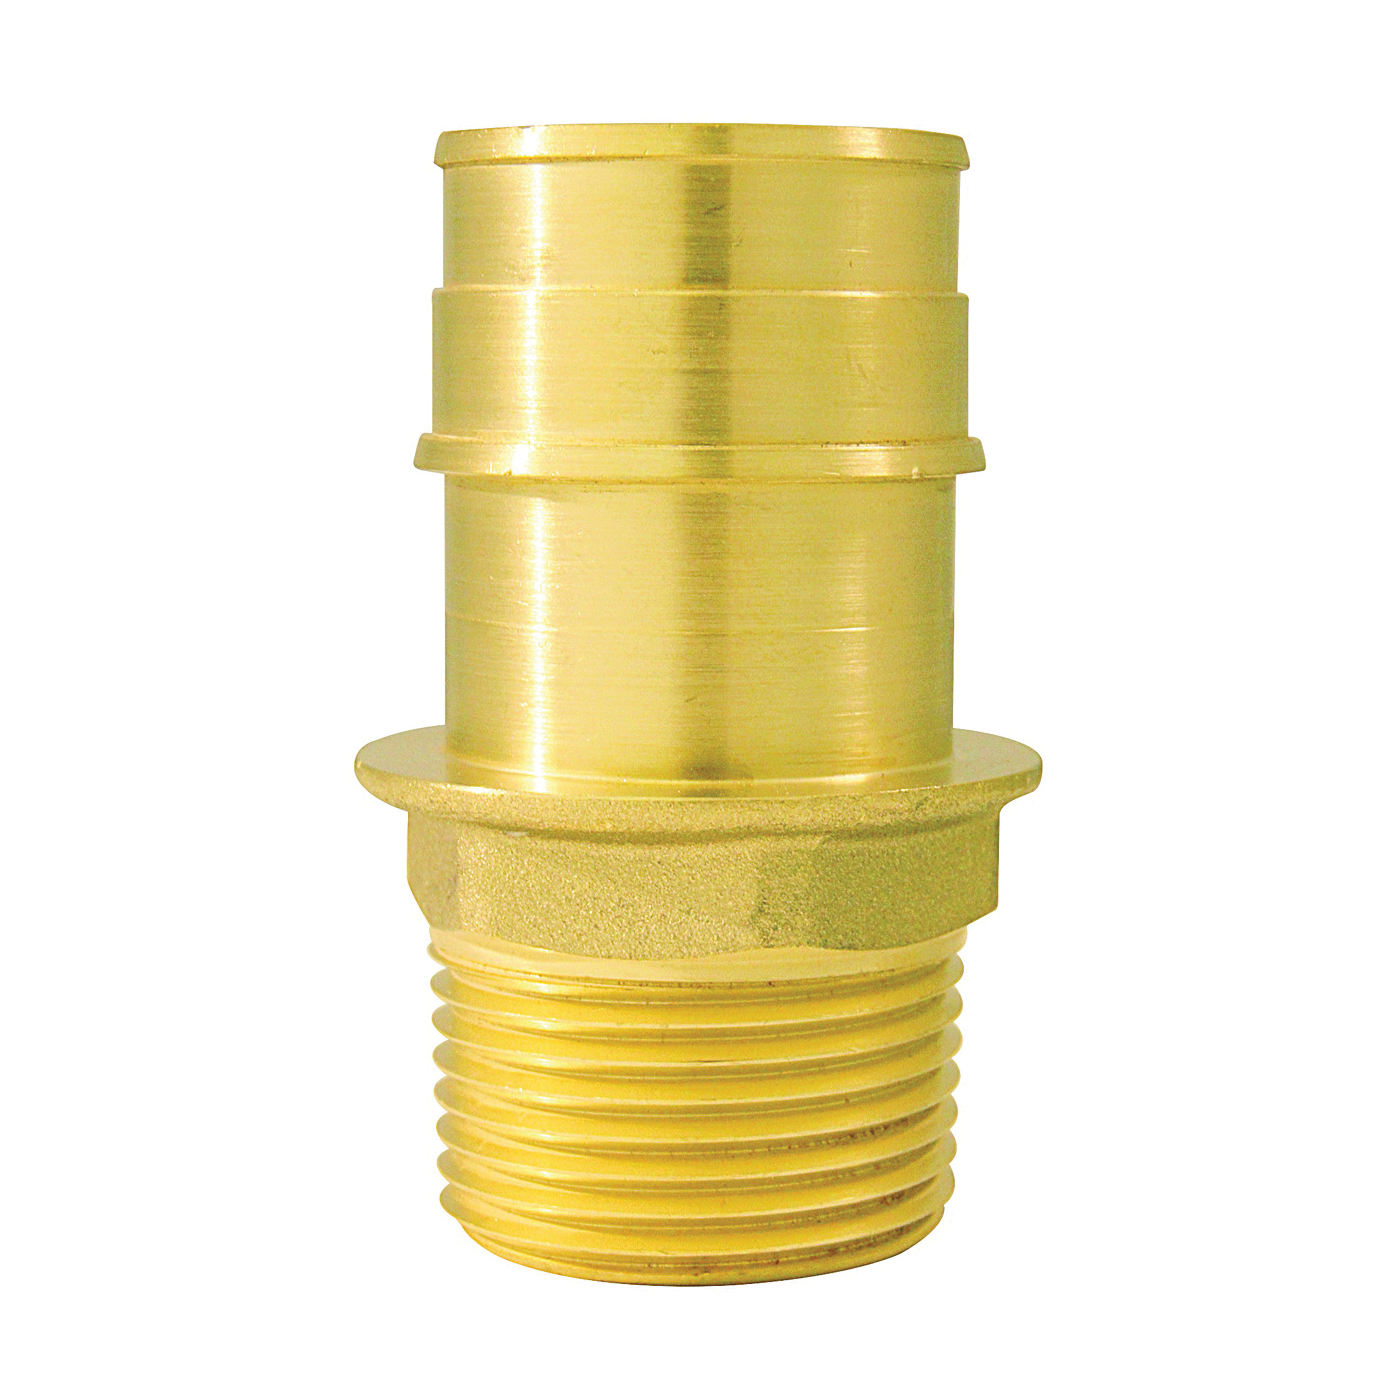 Picture of Apollo ExpansionPEX EPXMA134 Reducing Adapter, 1 x 3/4 in, Barb x MPT, Brass, 200 psi Pressure